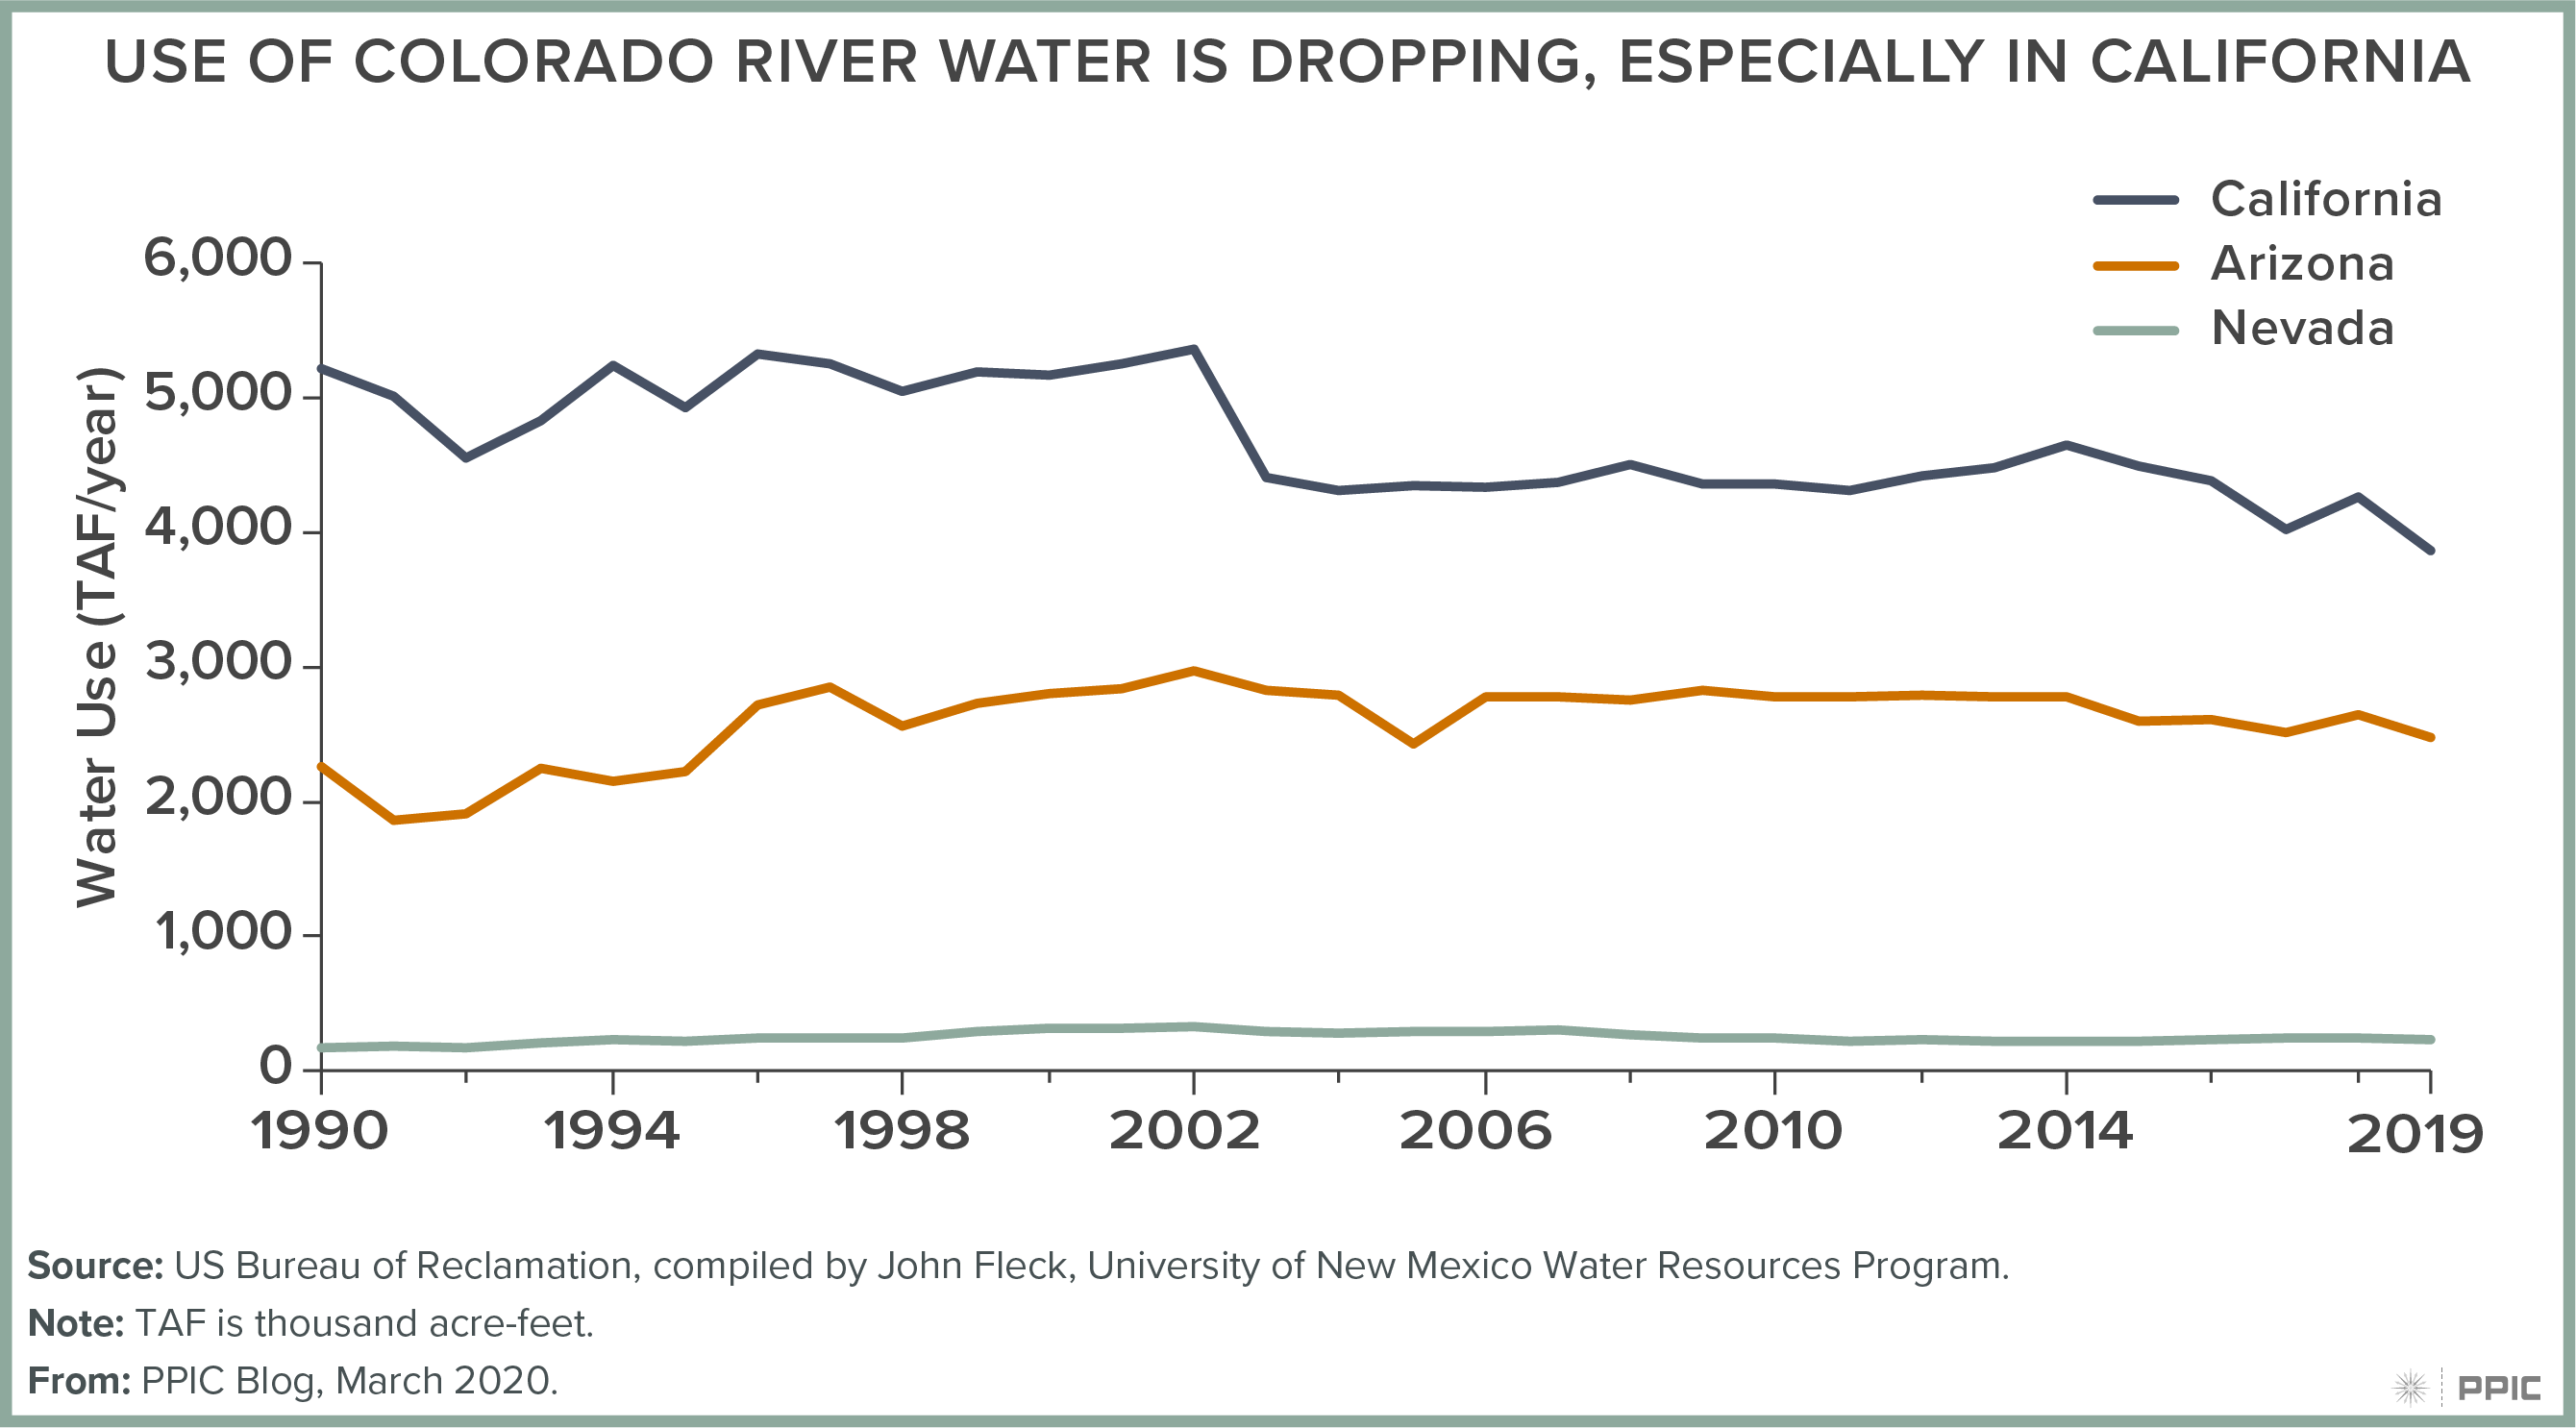 figure - Use of Colorado River Water Is Dropping, Especially in California